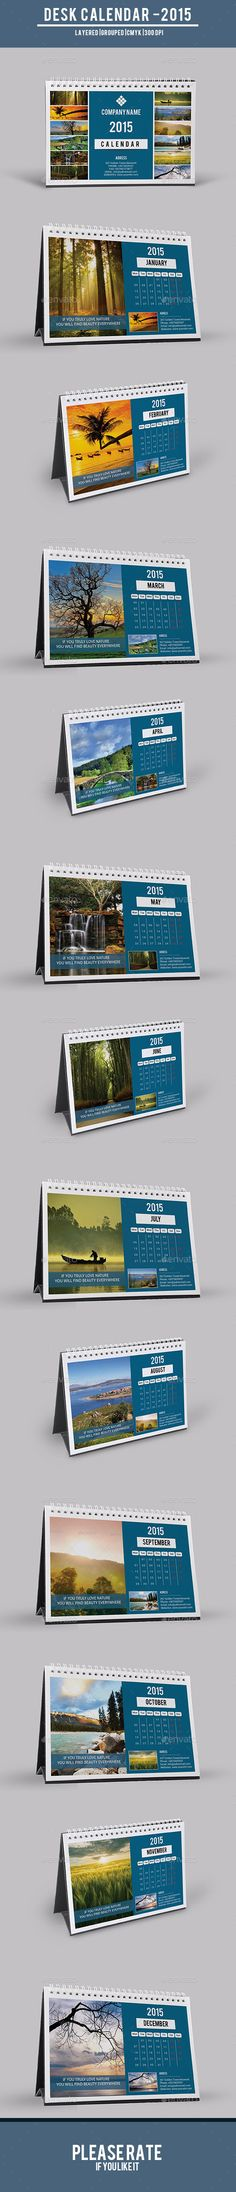 Desk Calendar by sydneytec The Company Calendar 2017 Fully Layered PSD. Calendar includes 12 months from January 2017 to December 2017 with Front Cover. Desk Calender, Table Calendar, Calendar 2017, Calendar Design, Calendar Ideas, Flyer Design Templates, Print Templates, Calendar Templates, Layout Design